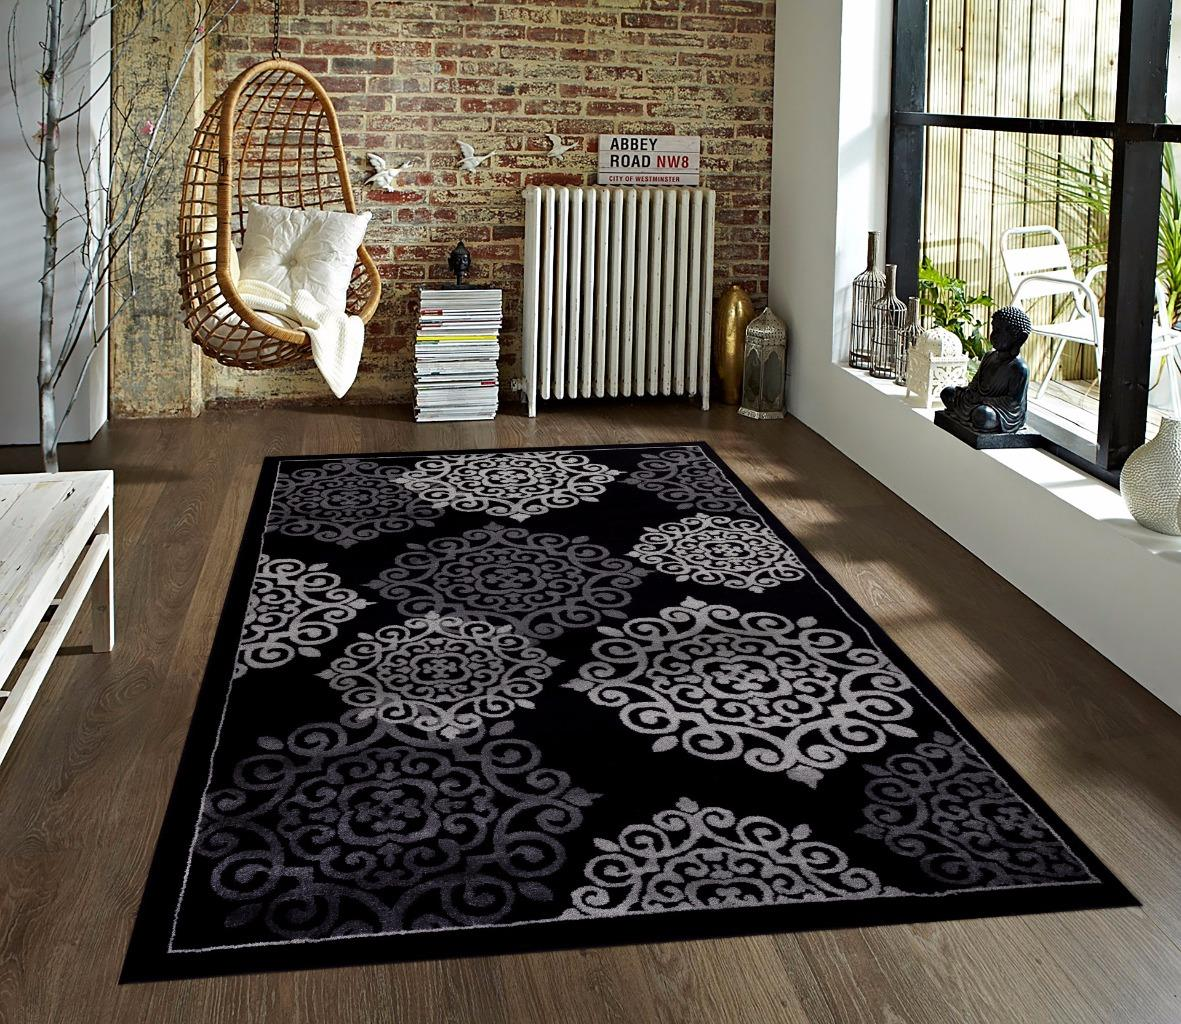 776 Black Gray Turquoise Modern Area Rug New Carpet 2x3